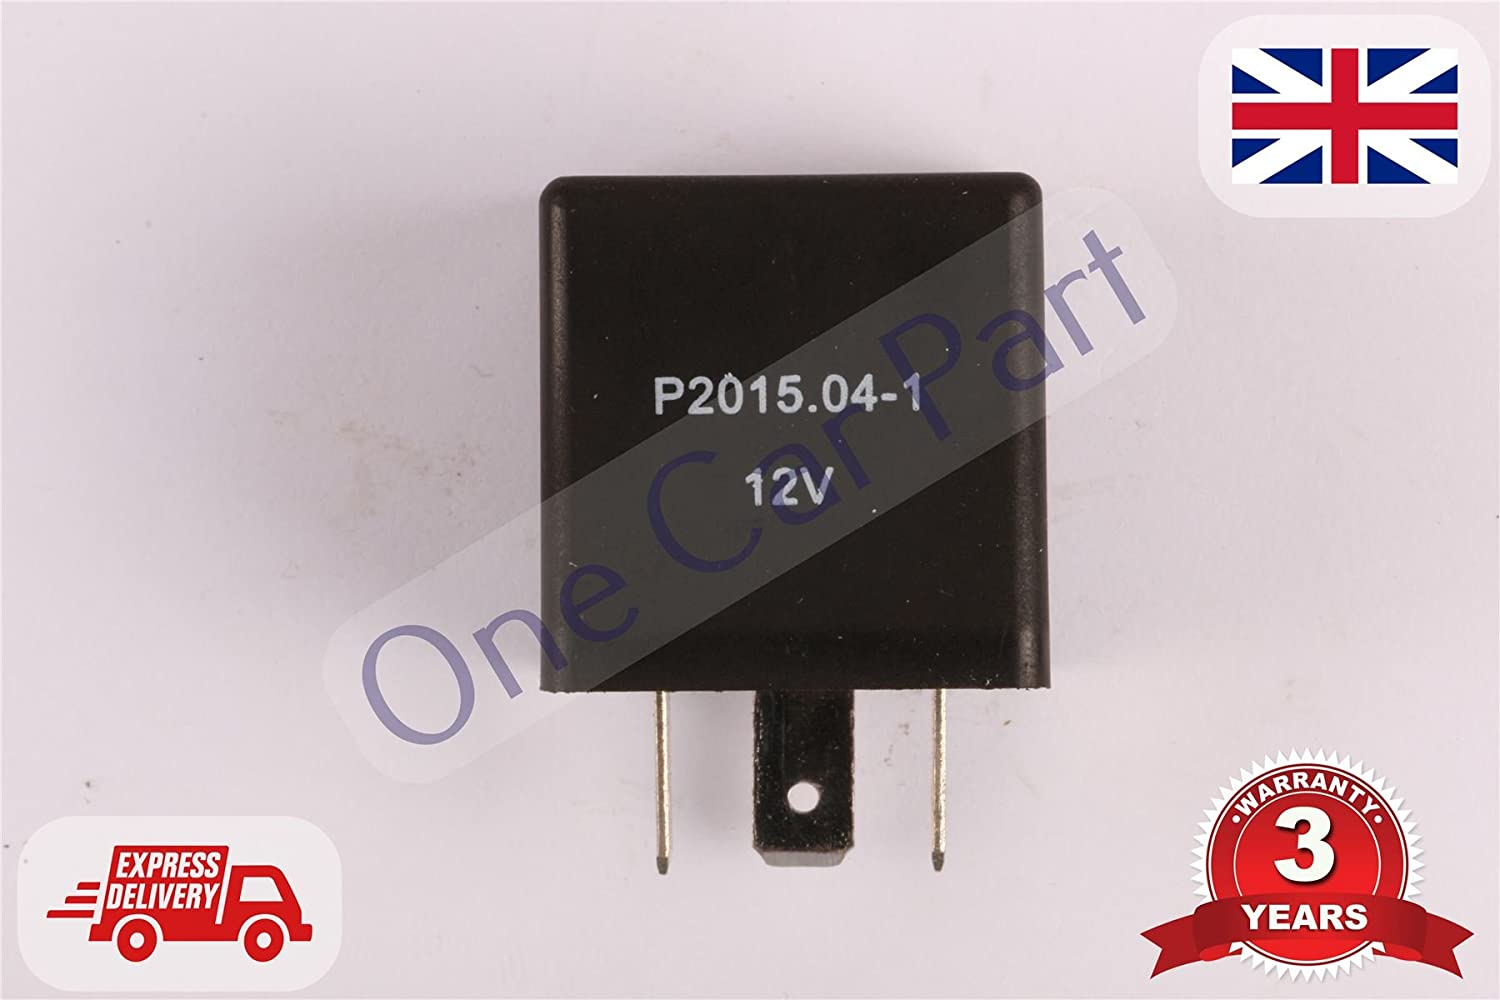 S40 V40 360 240 340 344 260 343 Flasher Unit 74 to 04 Indicator Relay New